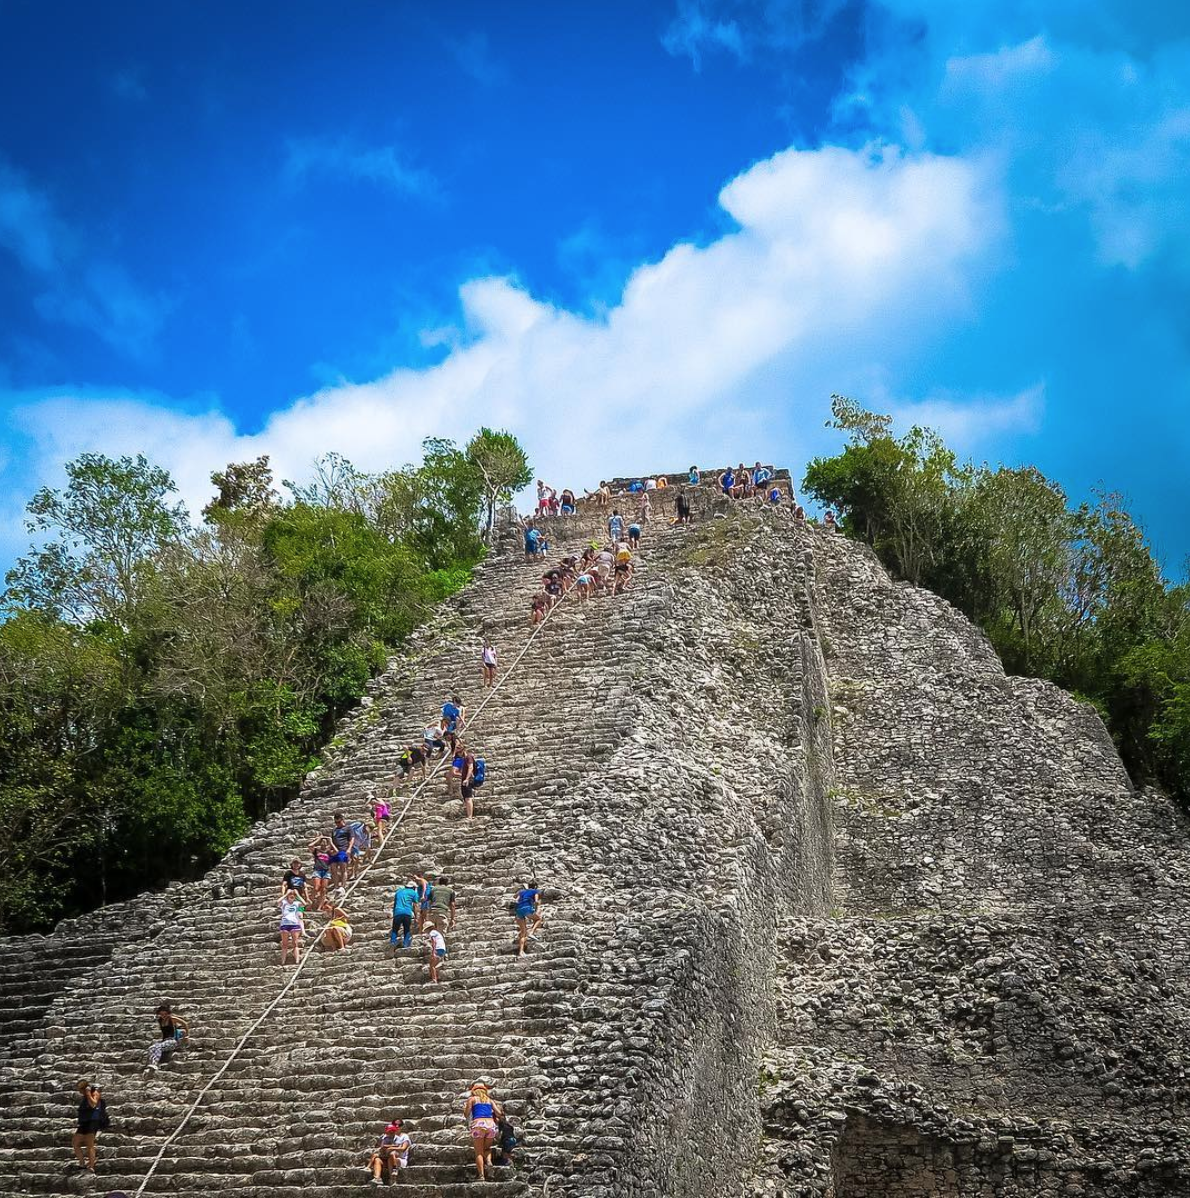 Climb to the top of the Coba Ruin to see the view for yourself.